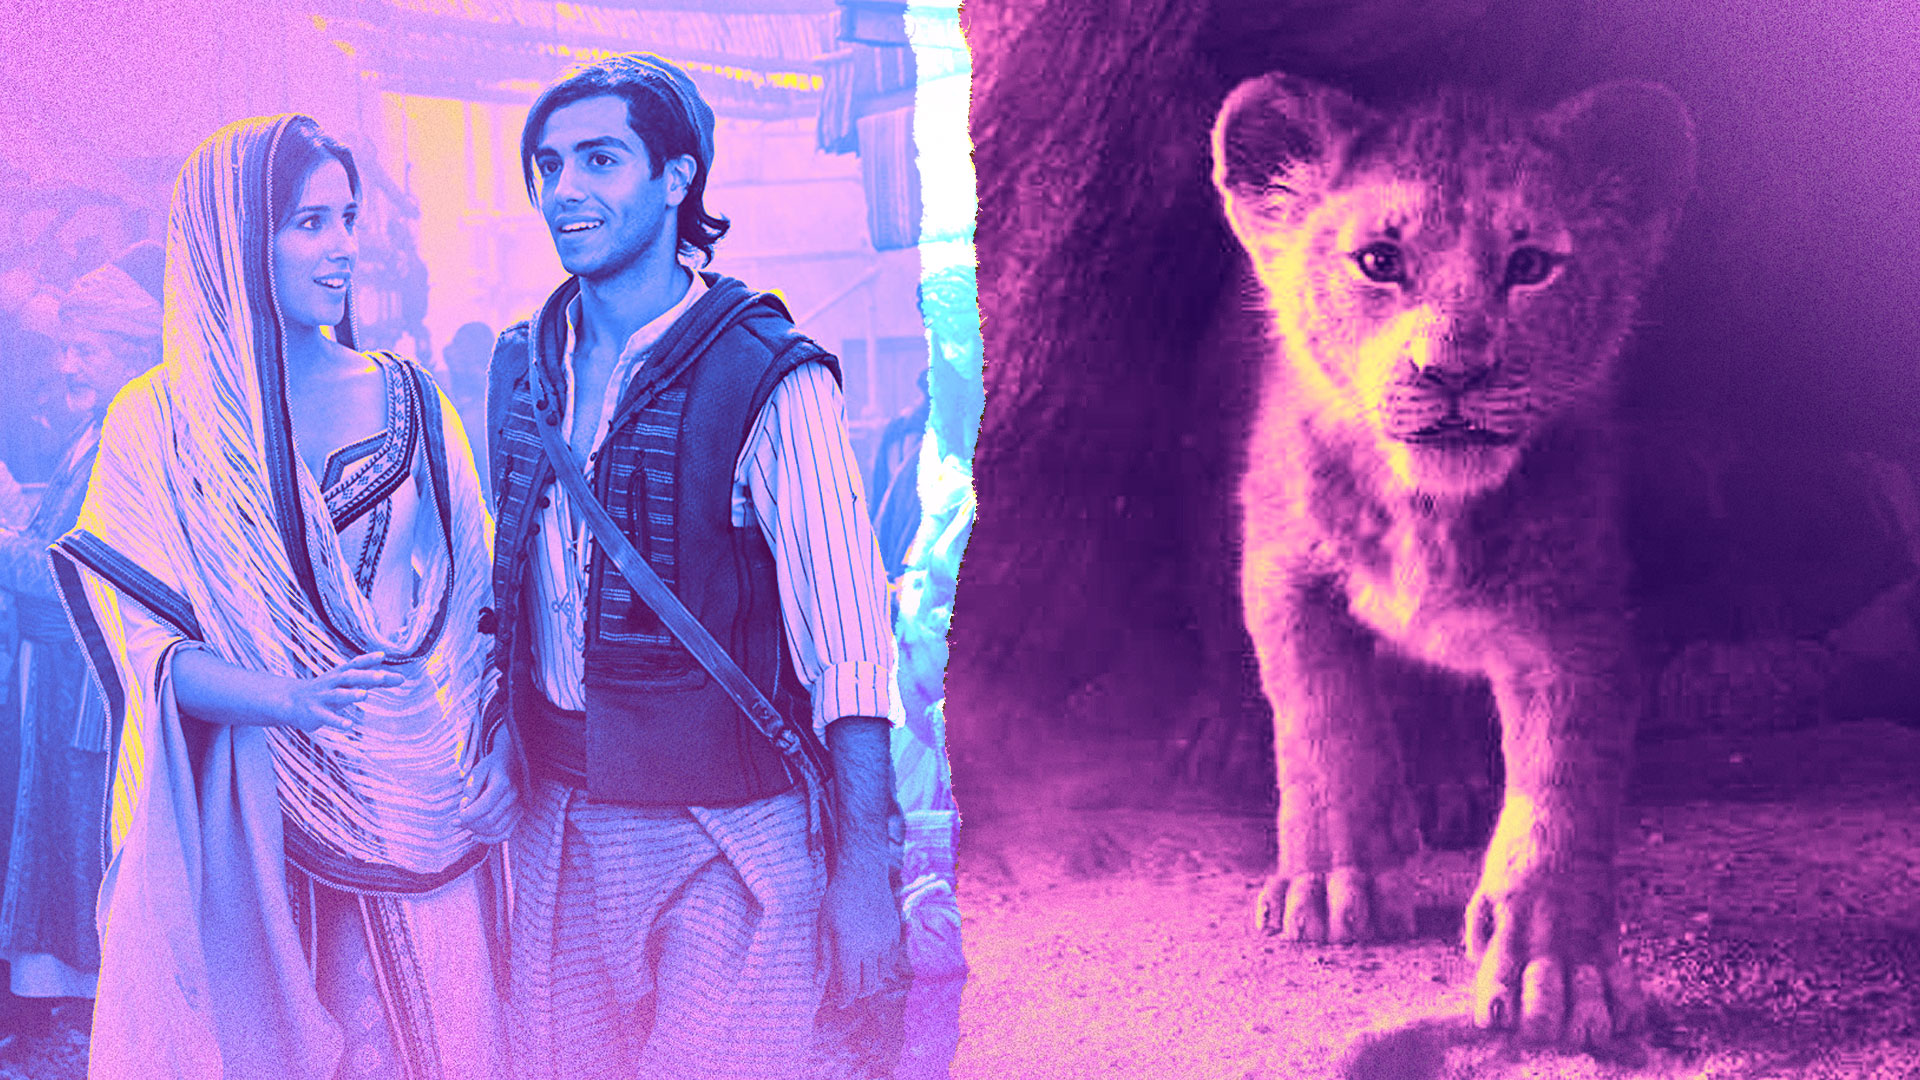 Live-Action Disney Movies   STYLECASTER